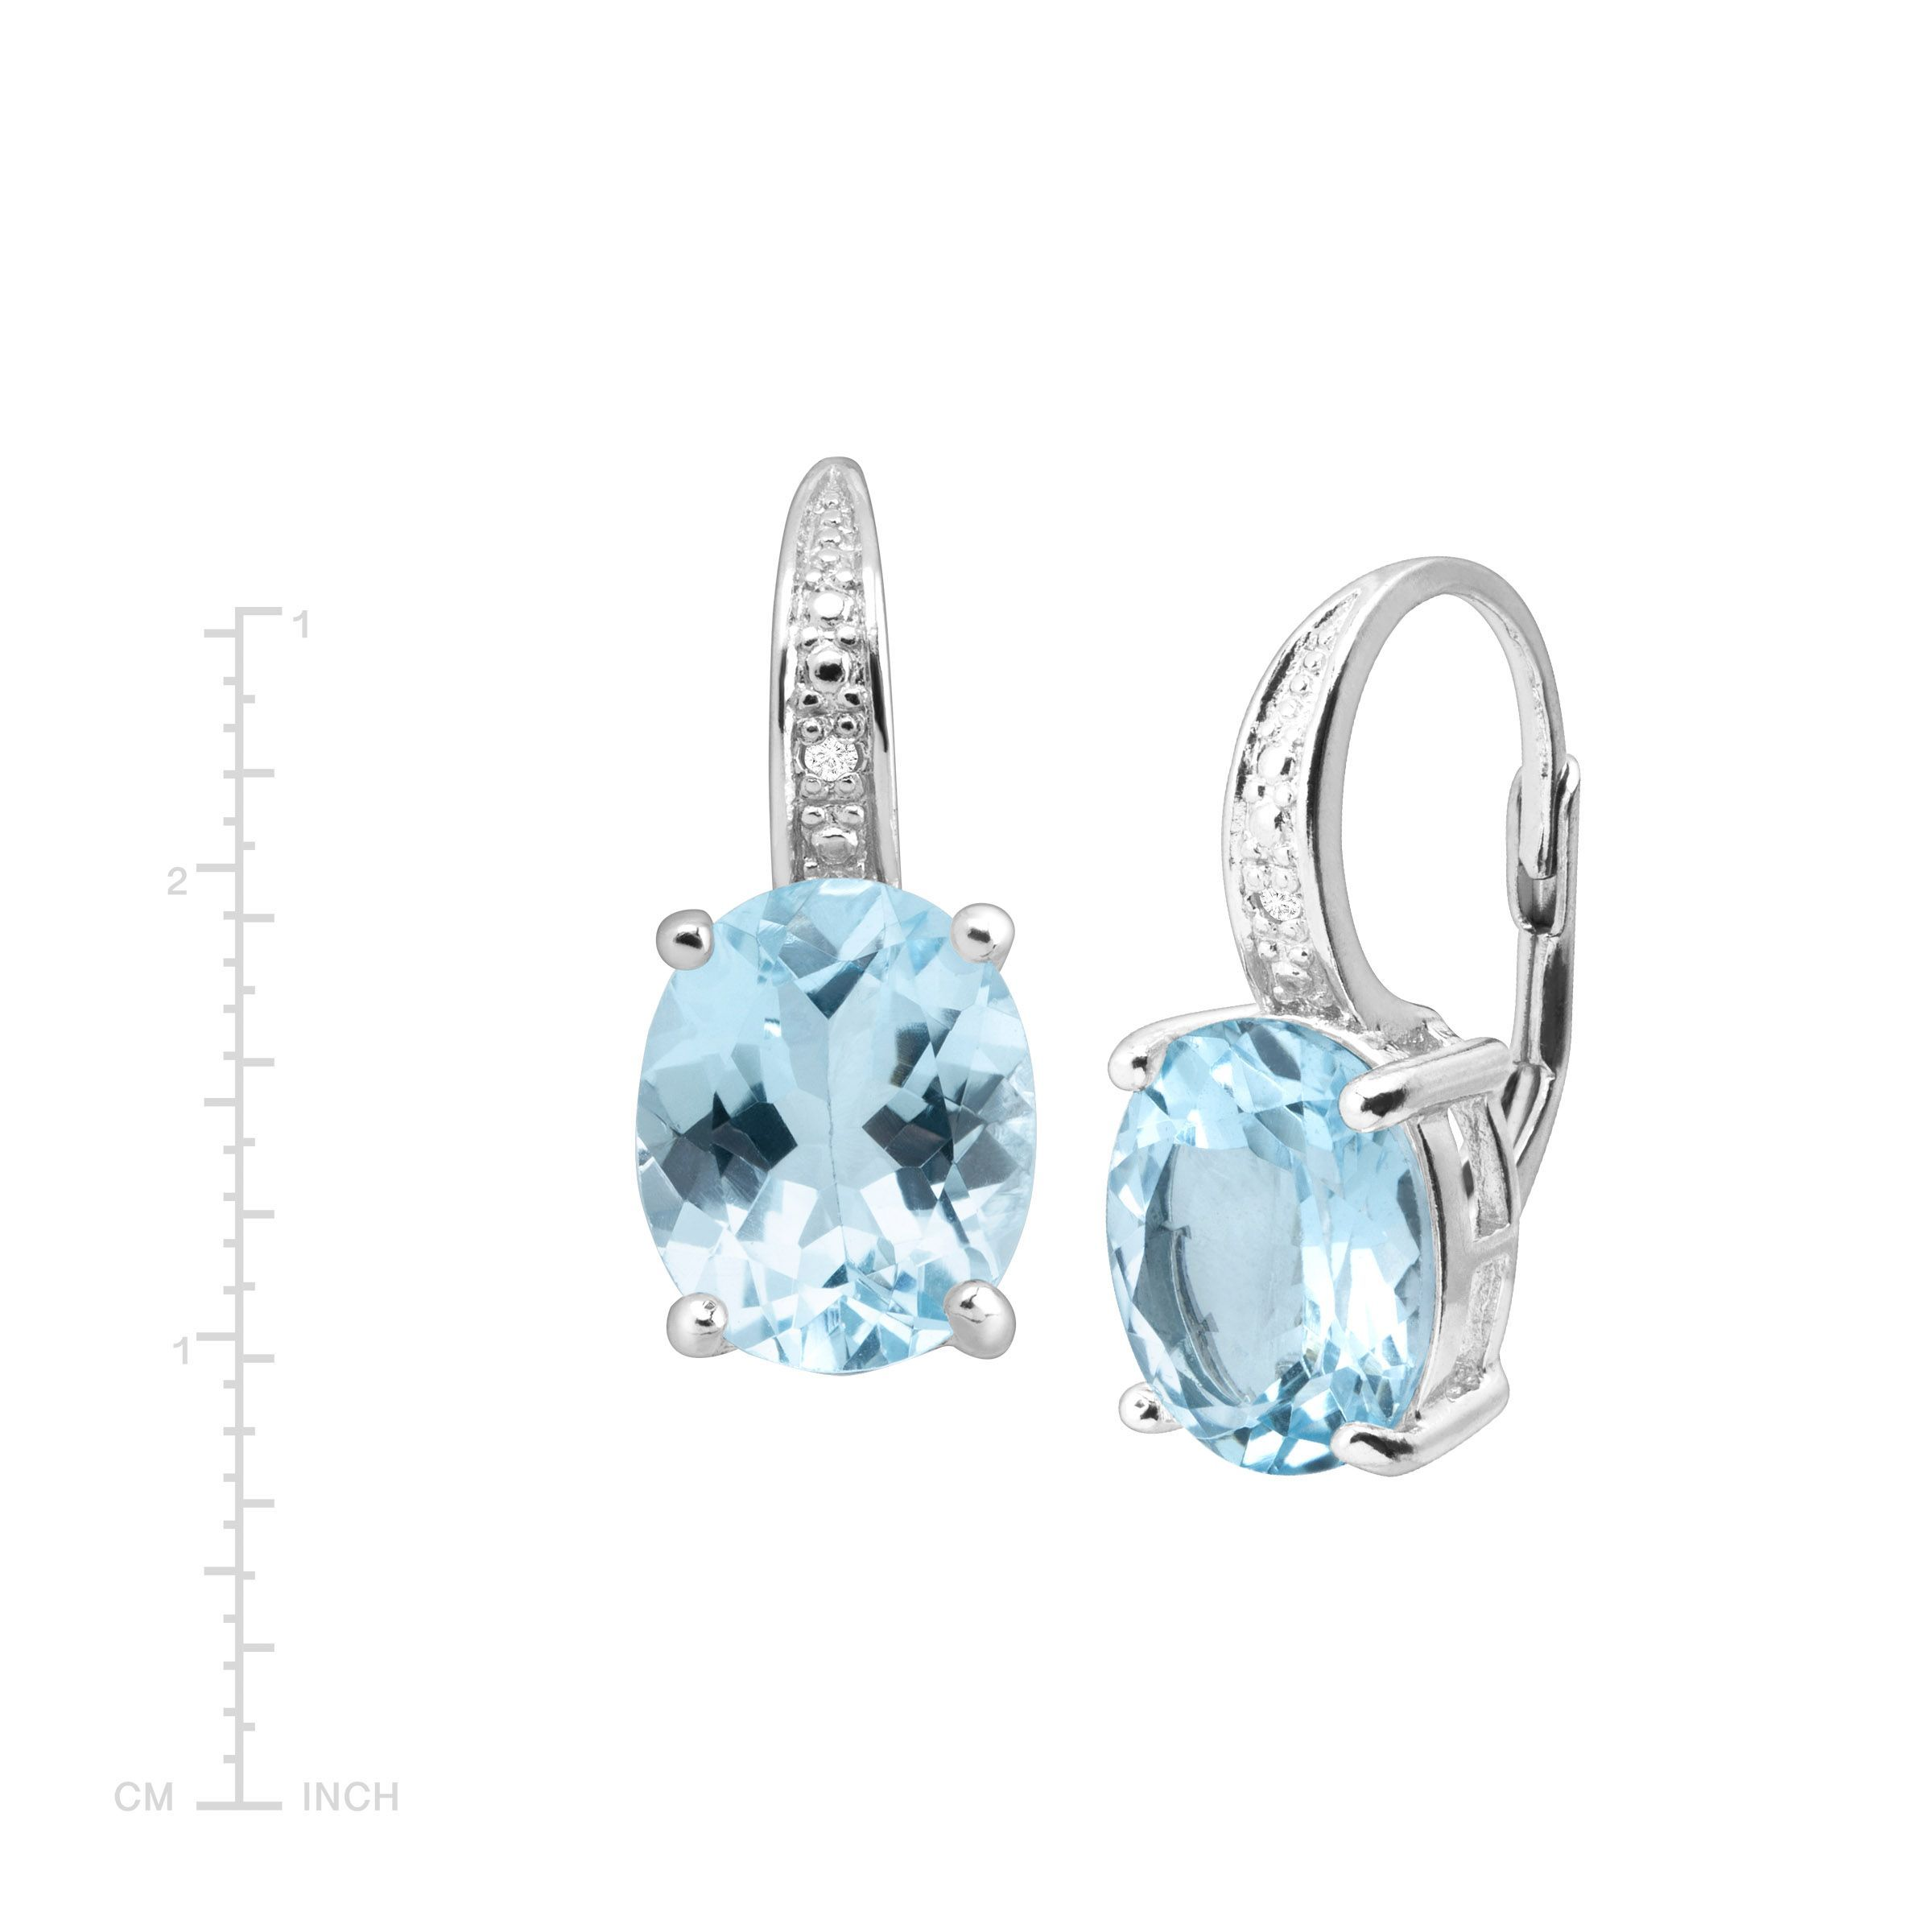 Natural-Gemstone-Drop-Earrings-with-Diamonds-in-Sterling-Silver thumbnail 14